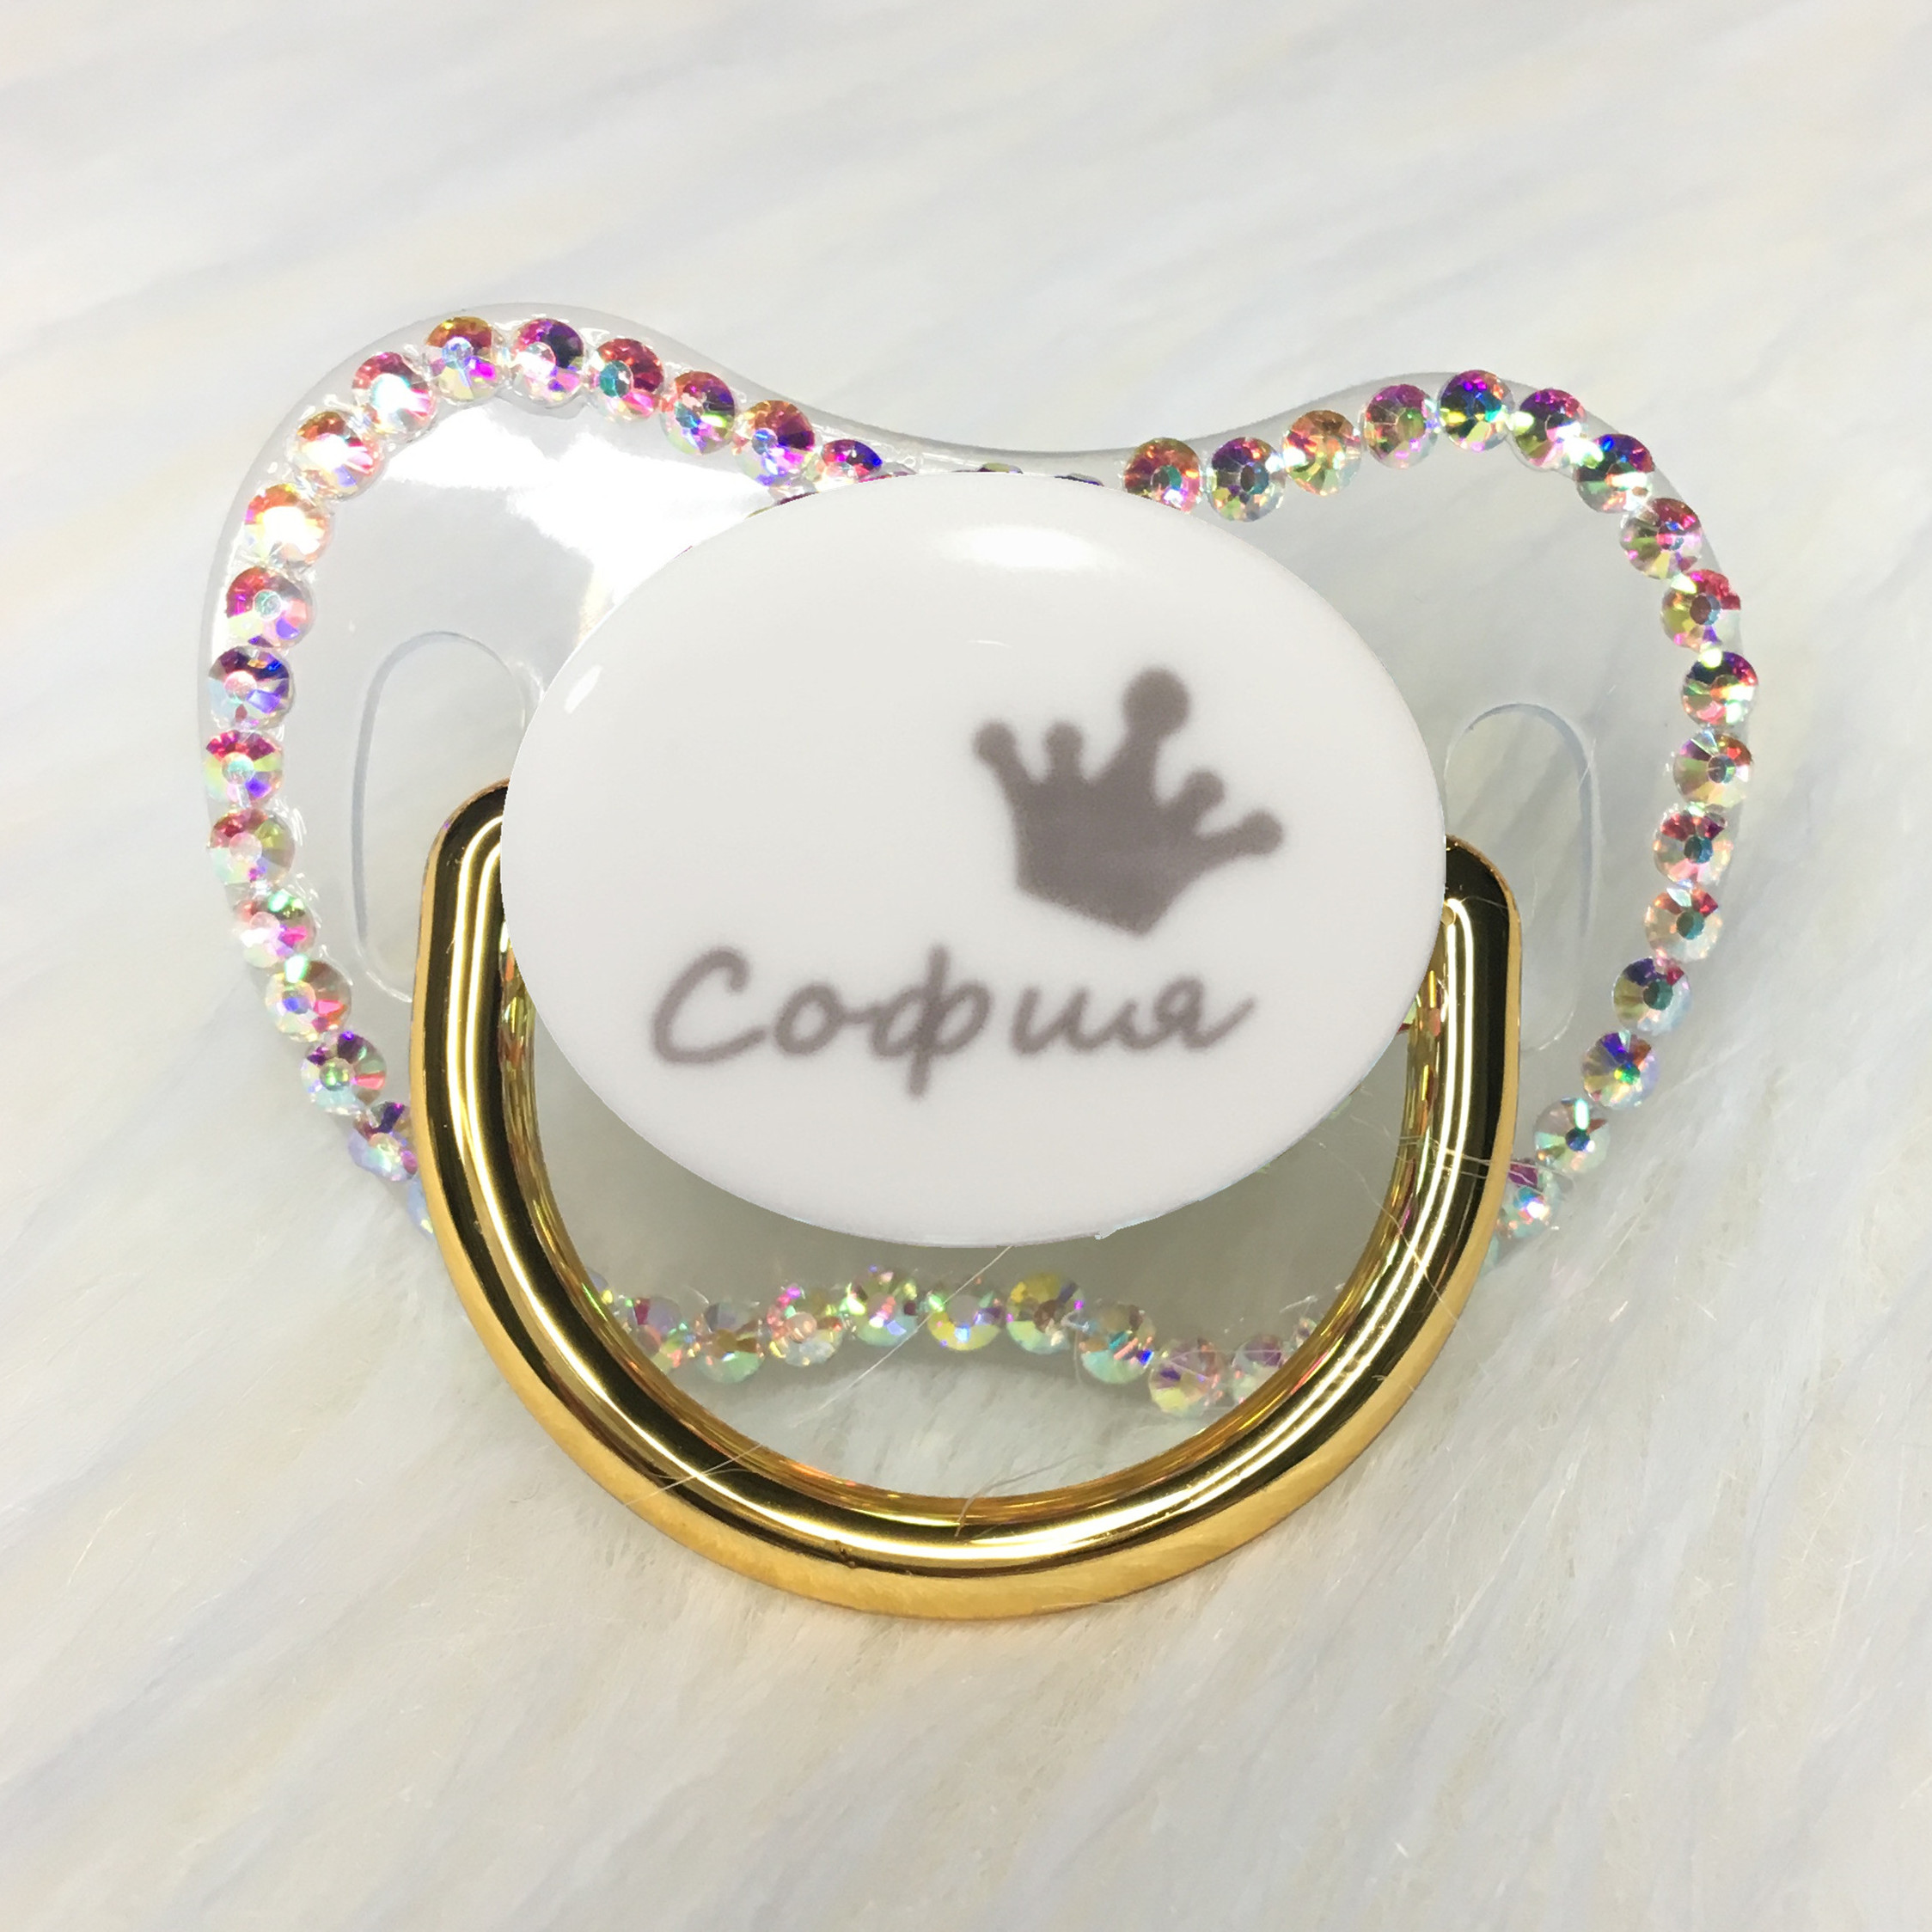 MIYOCAR Custom Any Name Can Make Gold Bling Rhinestone Pacifier Colorful Dummy Black BPA Free Dummy Bling Baby Shower PCC-C